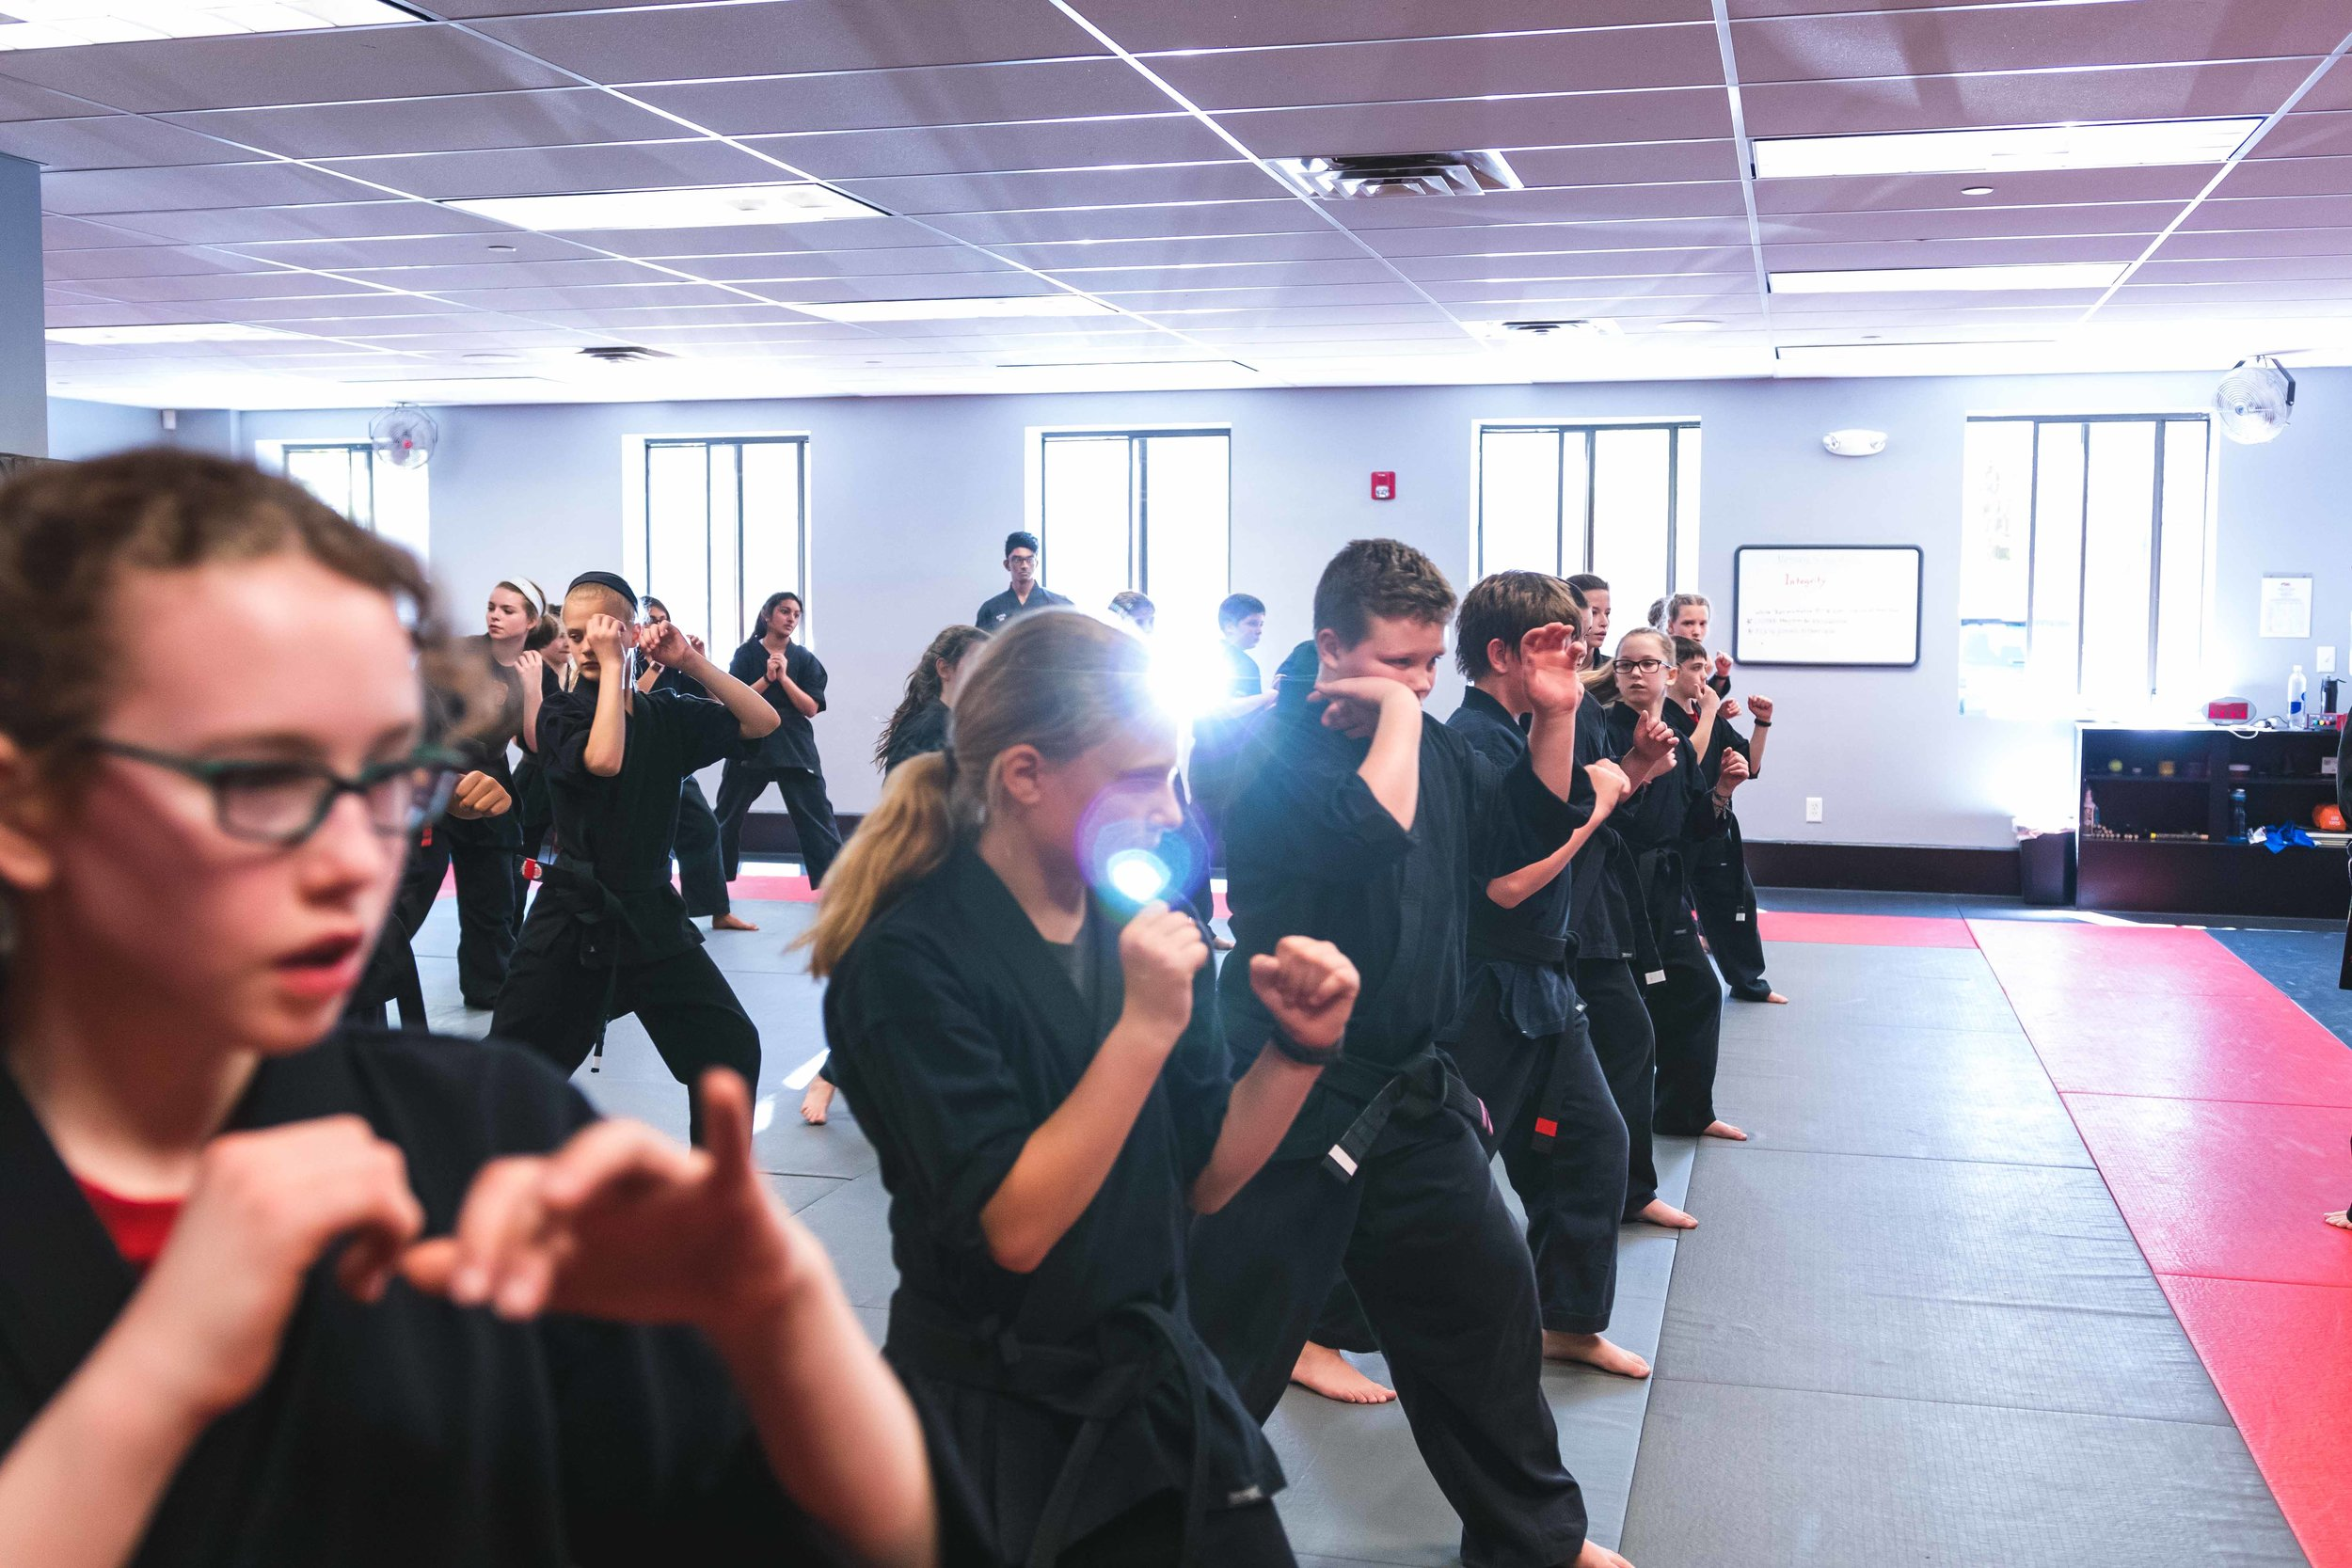 Martial Arts Classes for Kids Ages 7 to 12 in Bedford MA at Callahans Karate 01730.jpg